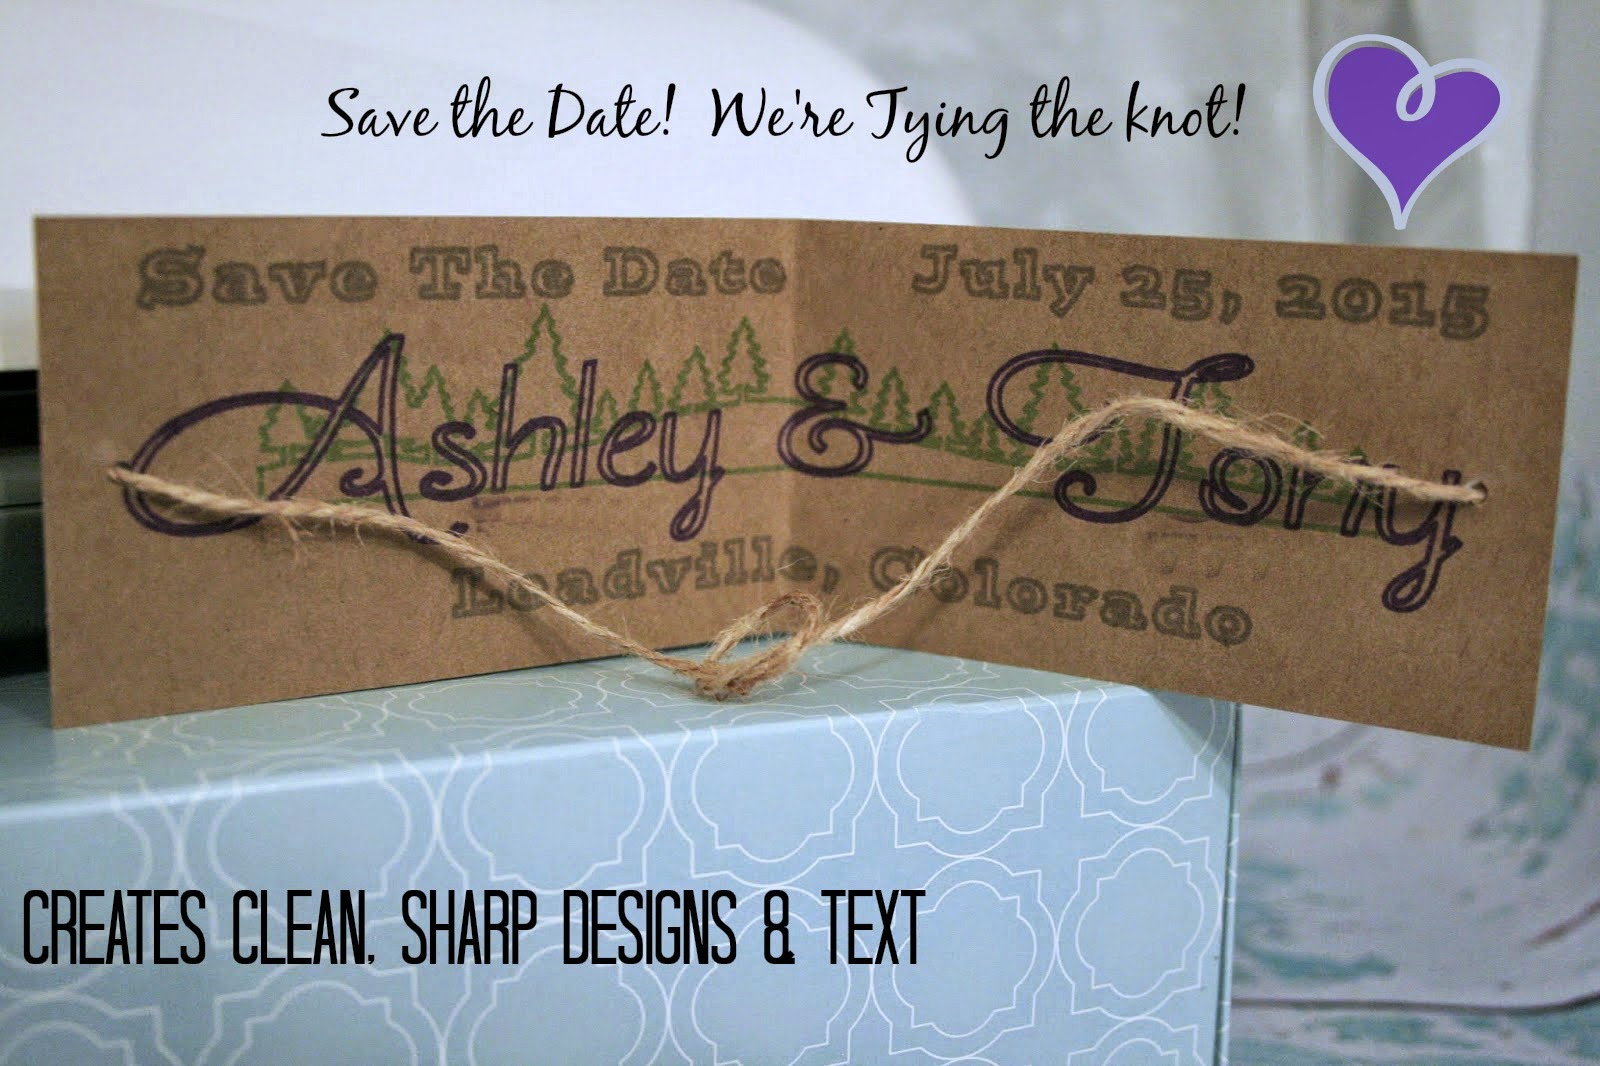 How to use a silhouette pen holder, Sharpie use in a silhouette, rustic mountain wedding save the dates